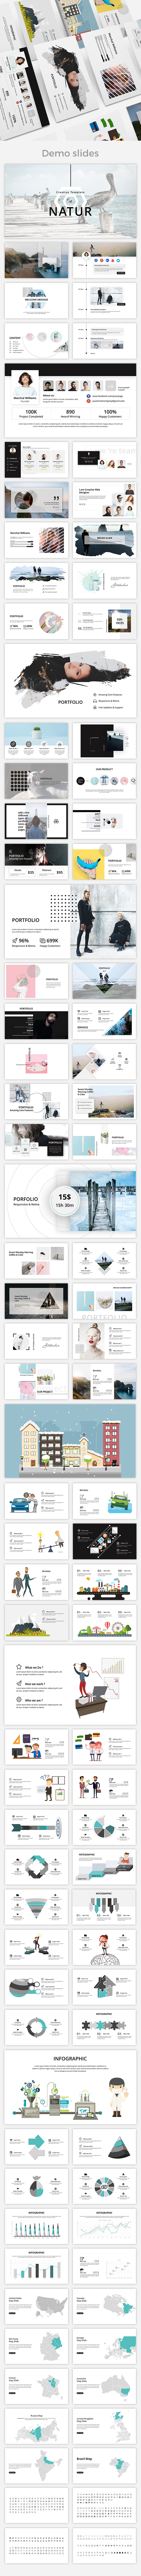 Natur Creative Keynote Template - Creative Keynote Templates